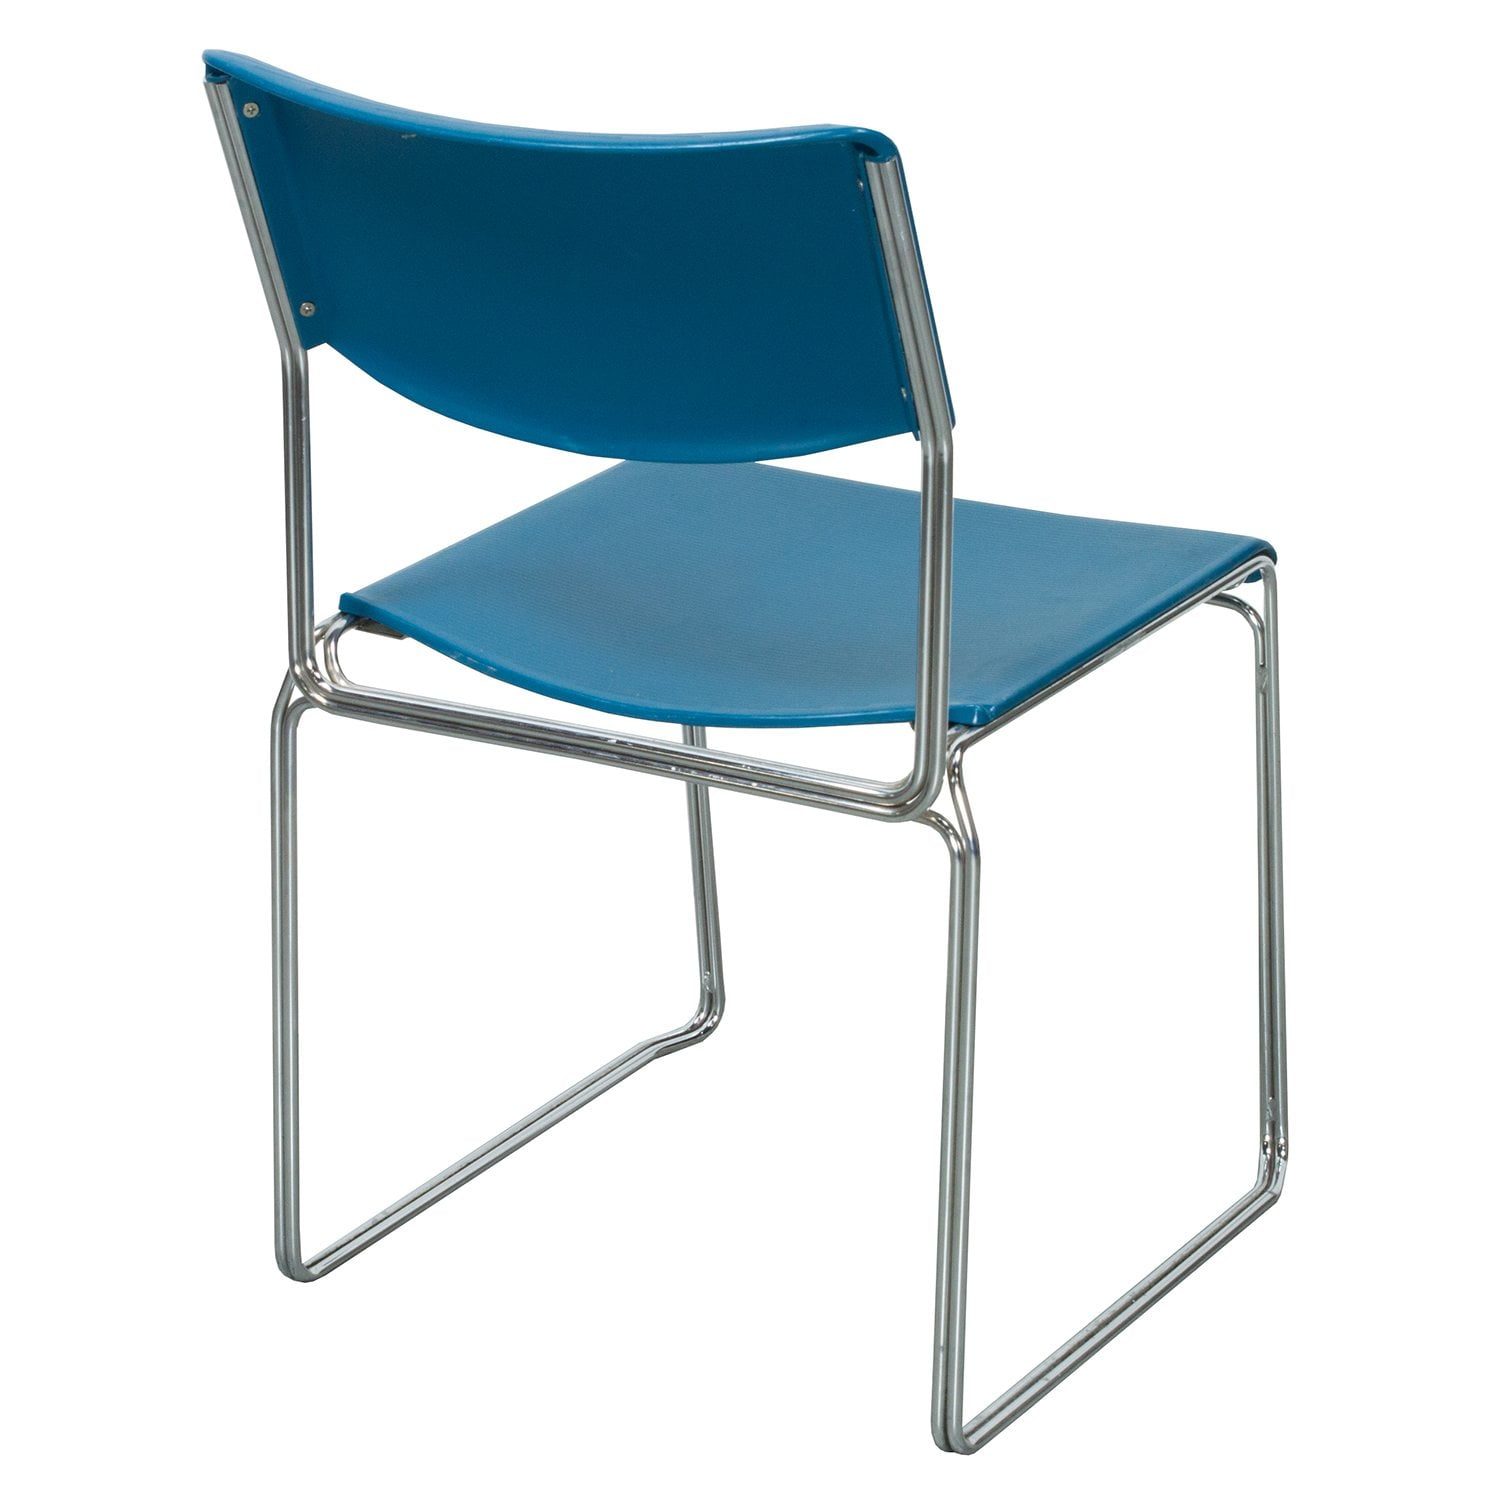 teal computer chair parsons covers comforto used stack national office